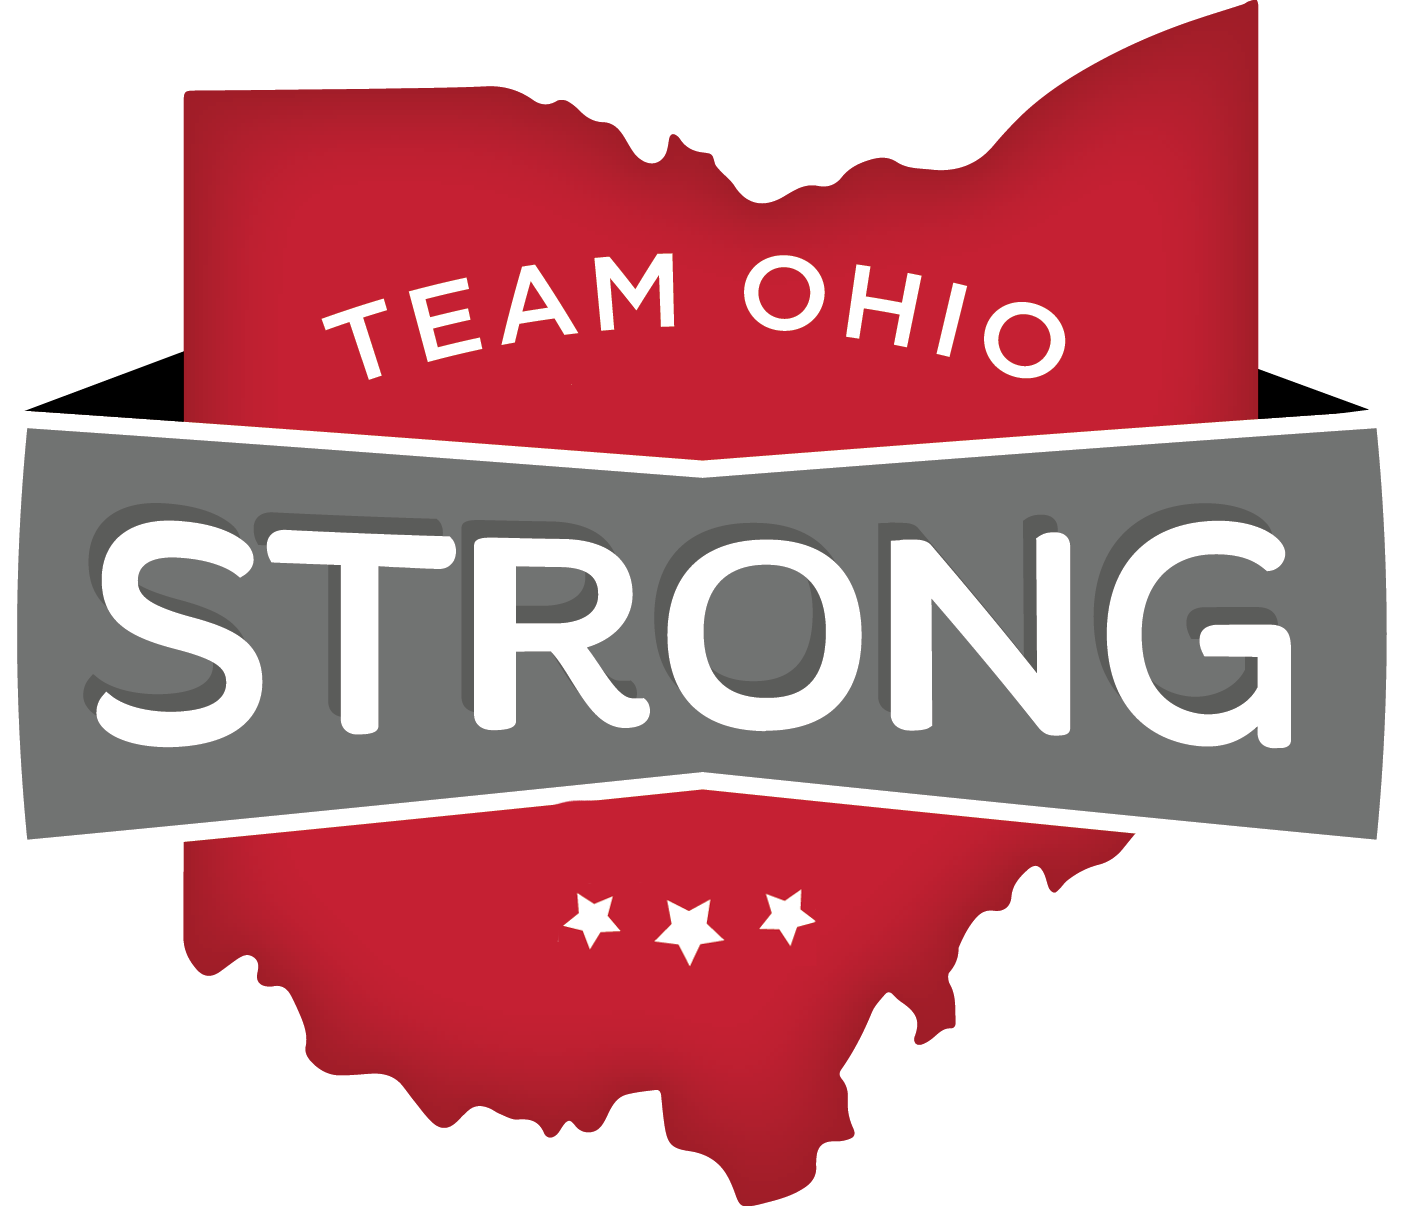 Stories team ohio. Nursing clipart lifeline